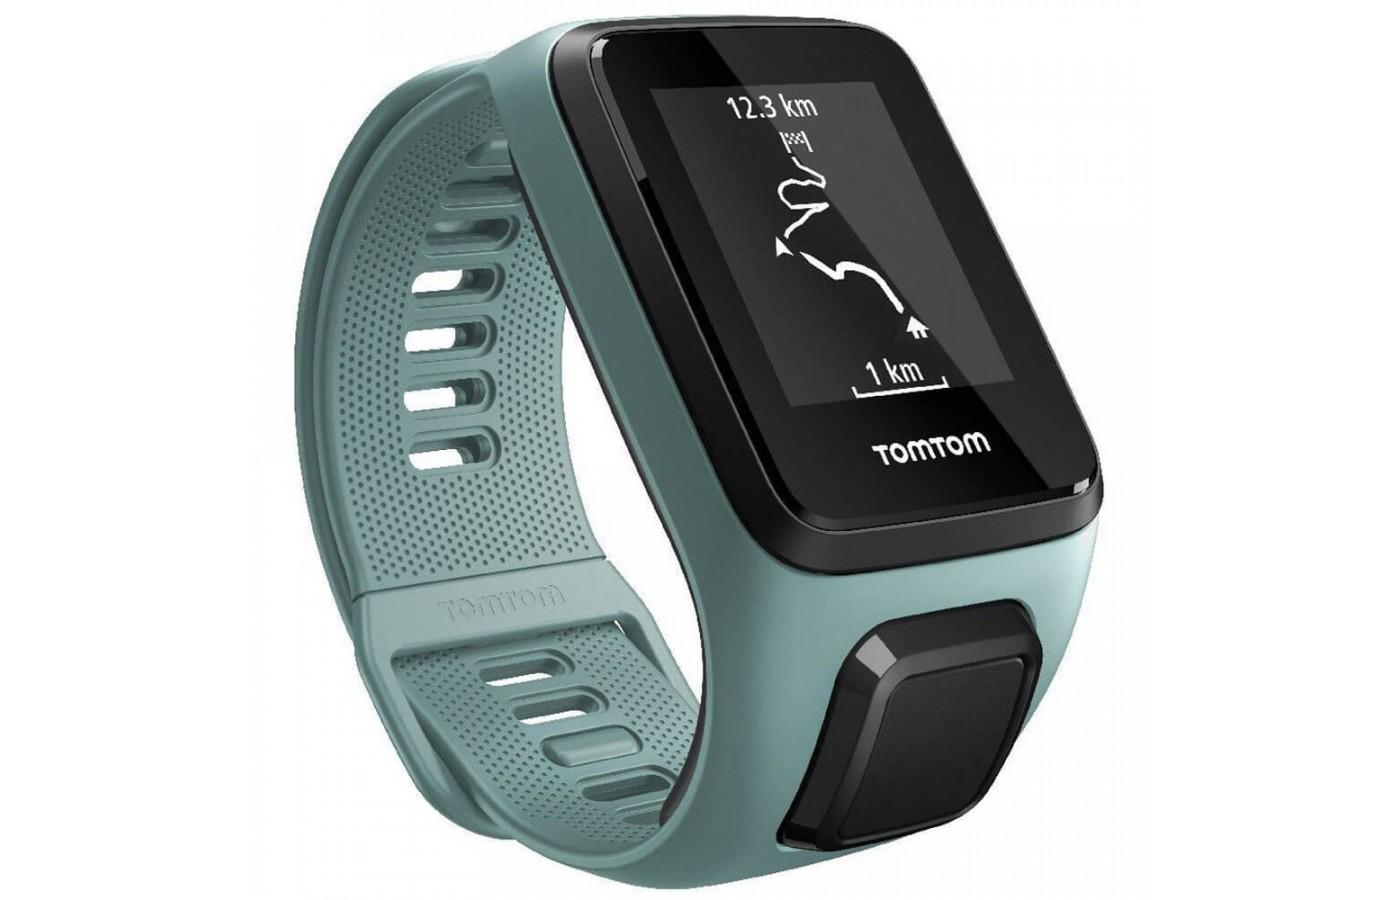 TomTom Spark is the basic model in the Spark line